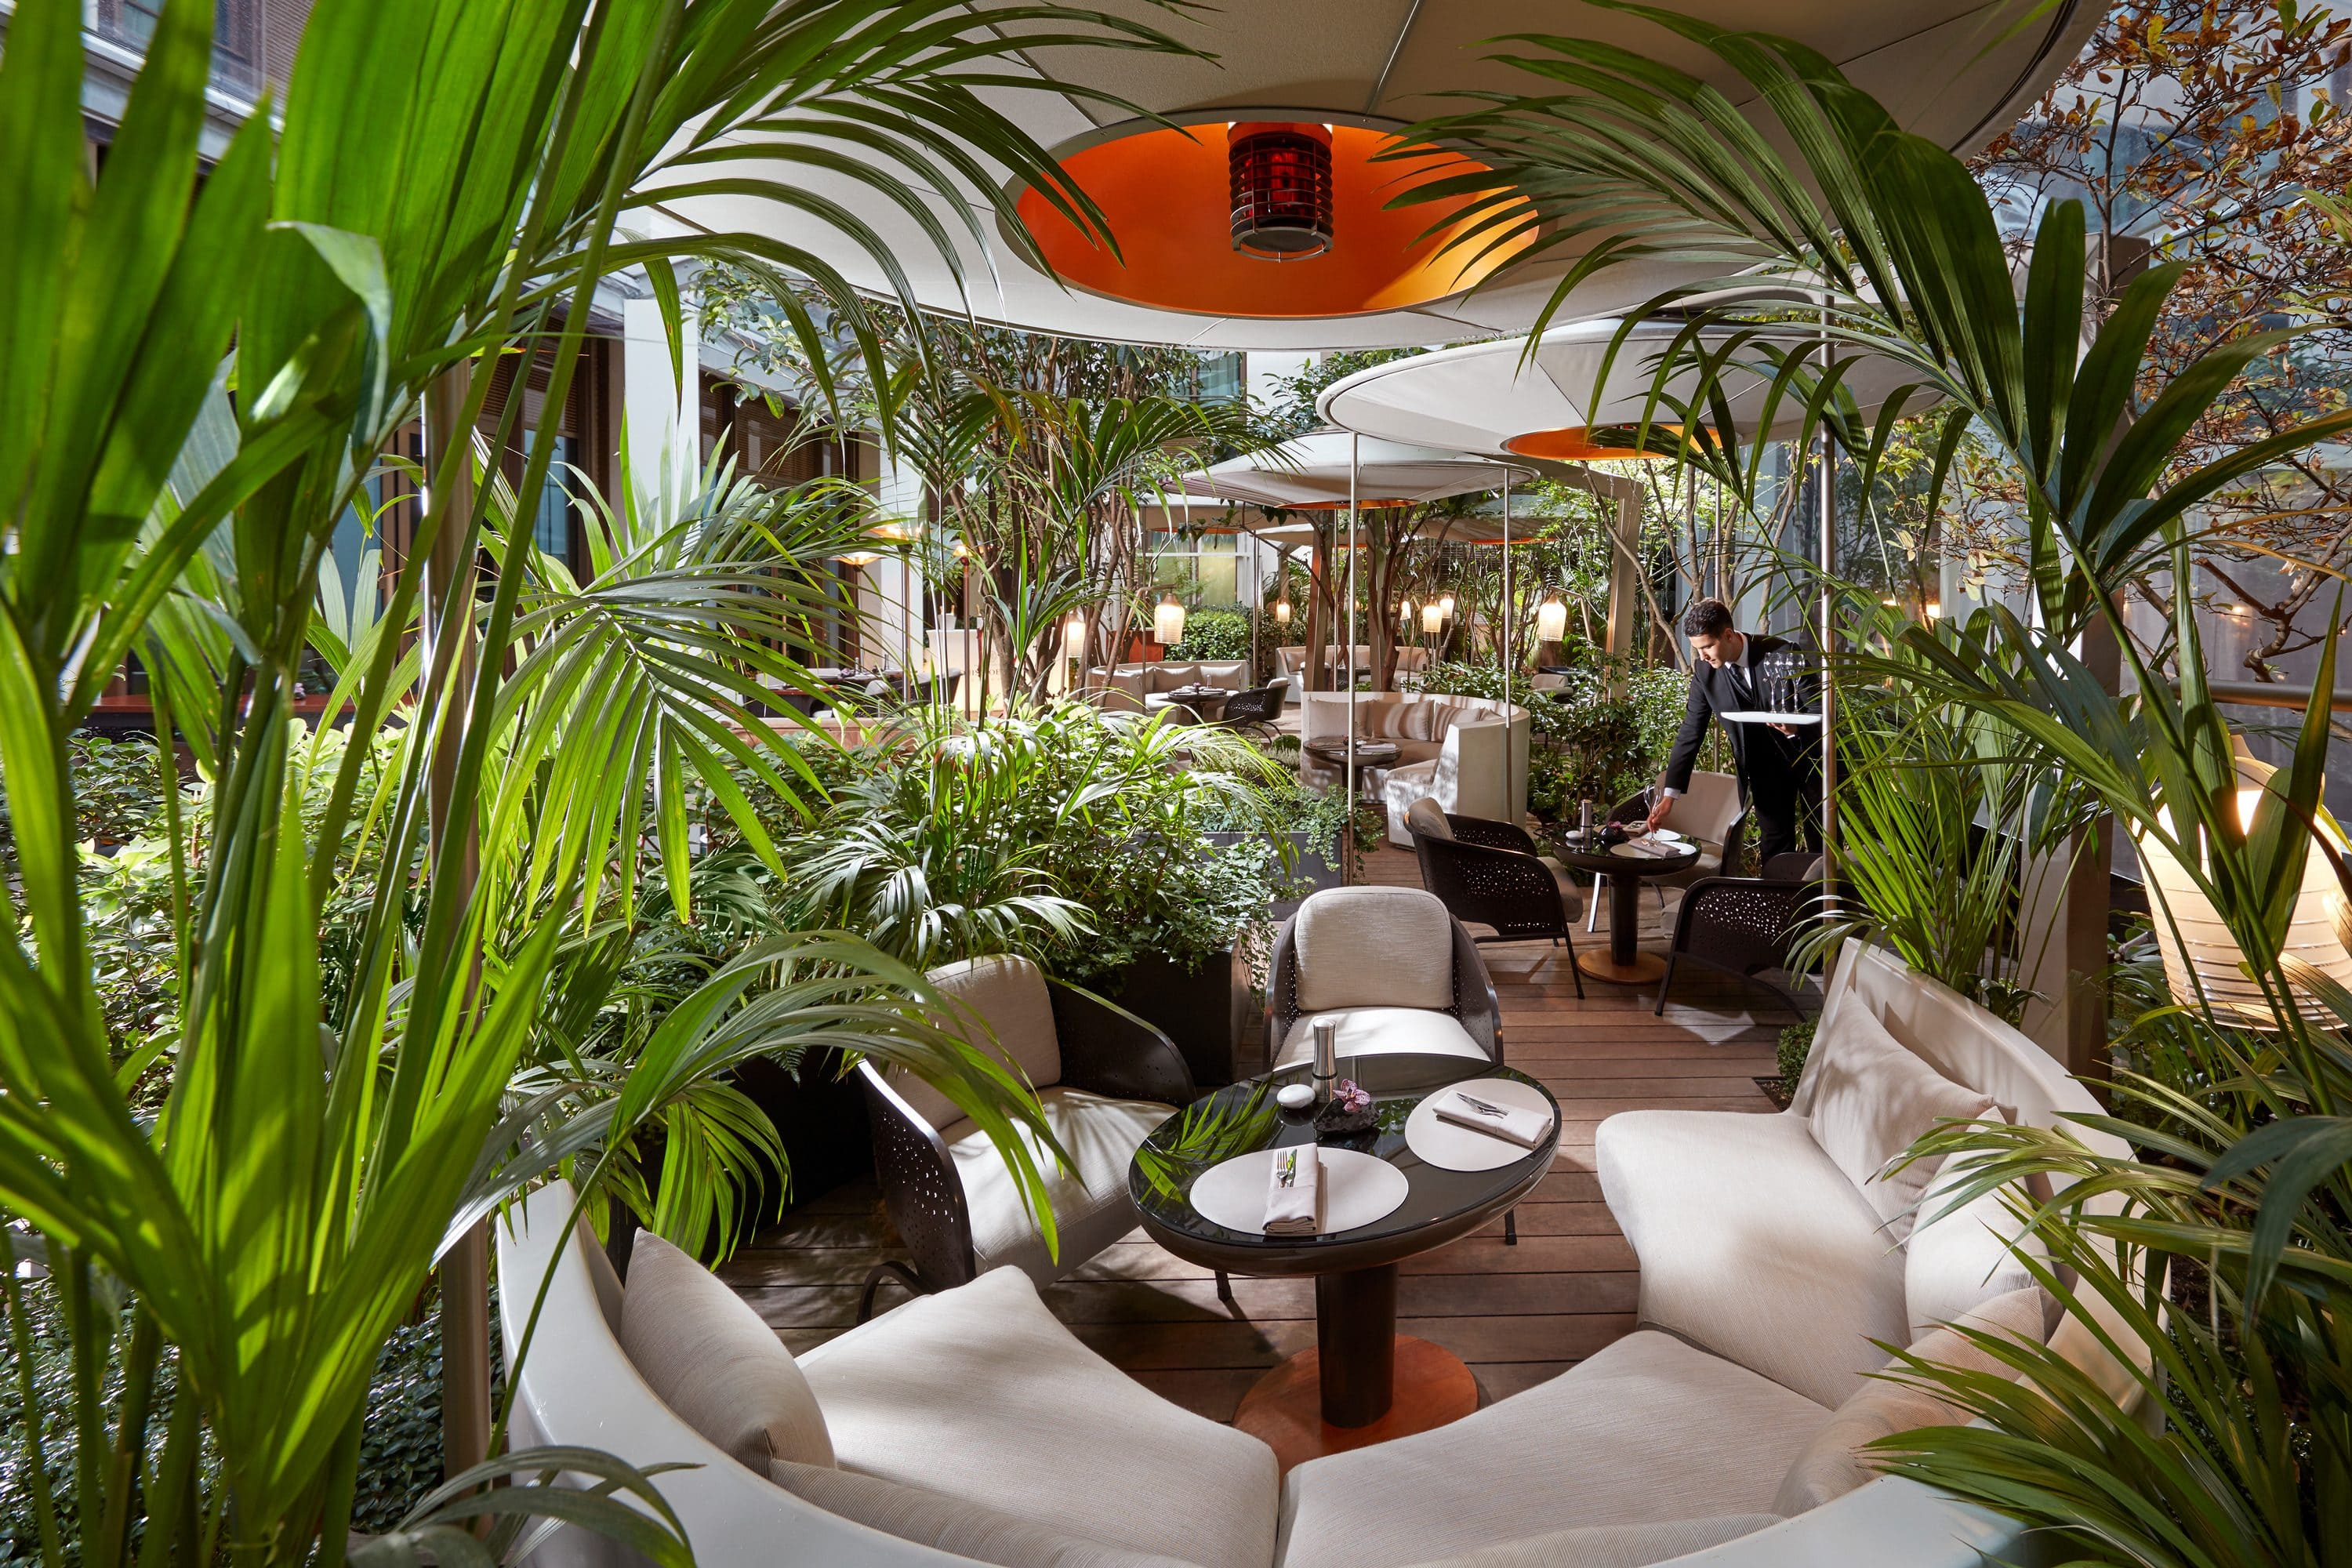 Palms and seats in the courtyard garden of Camelia at Mandarin Oriental, Paris